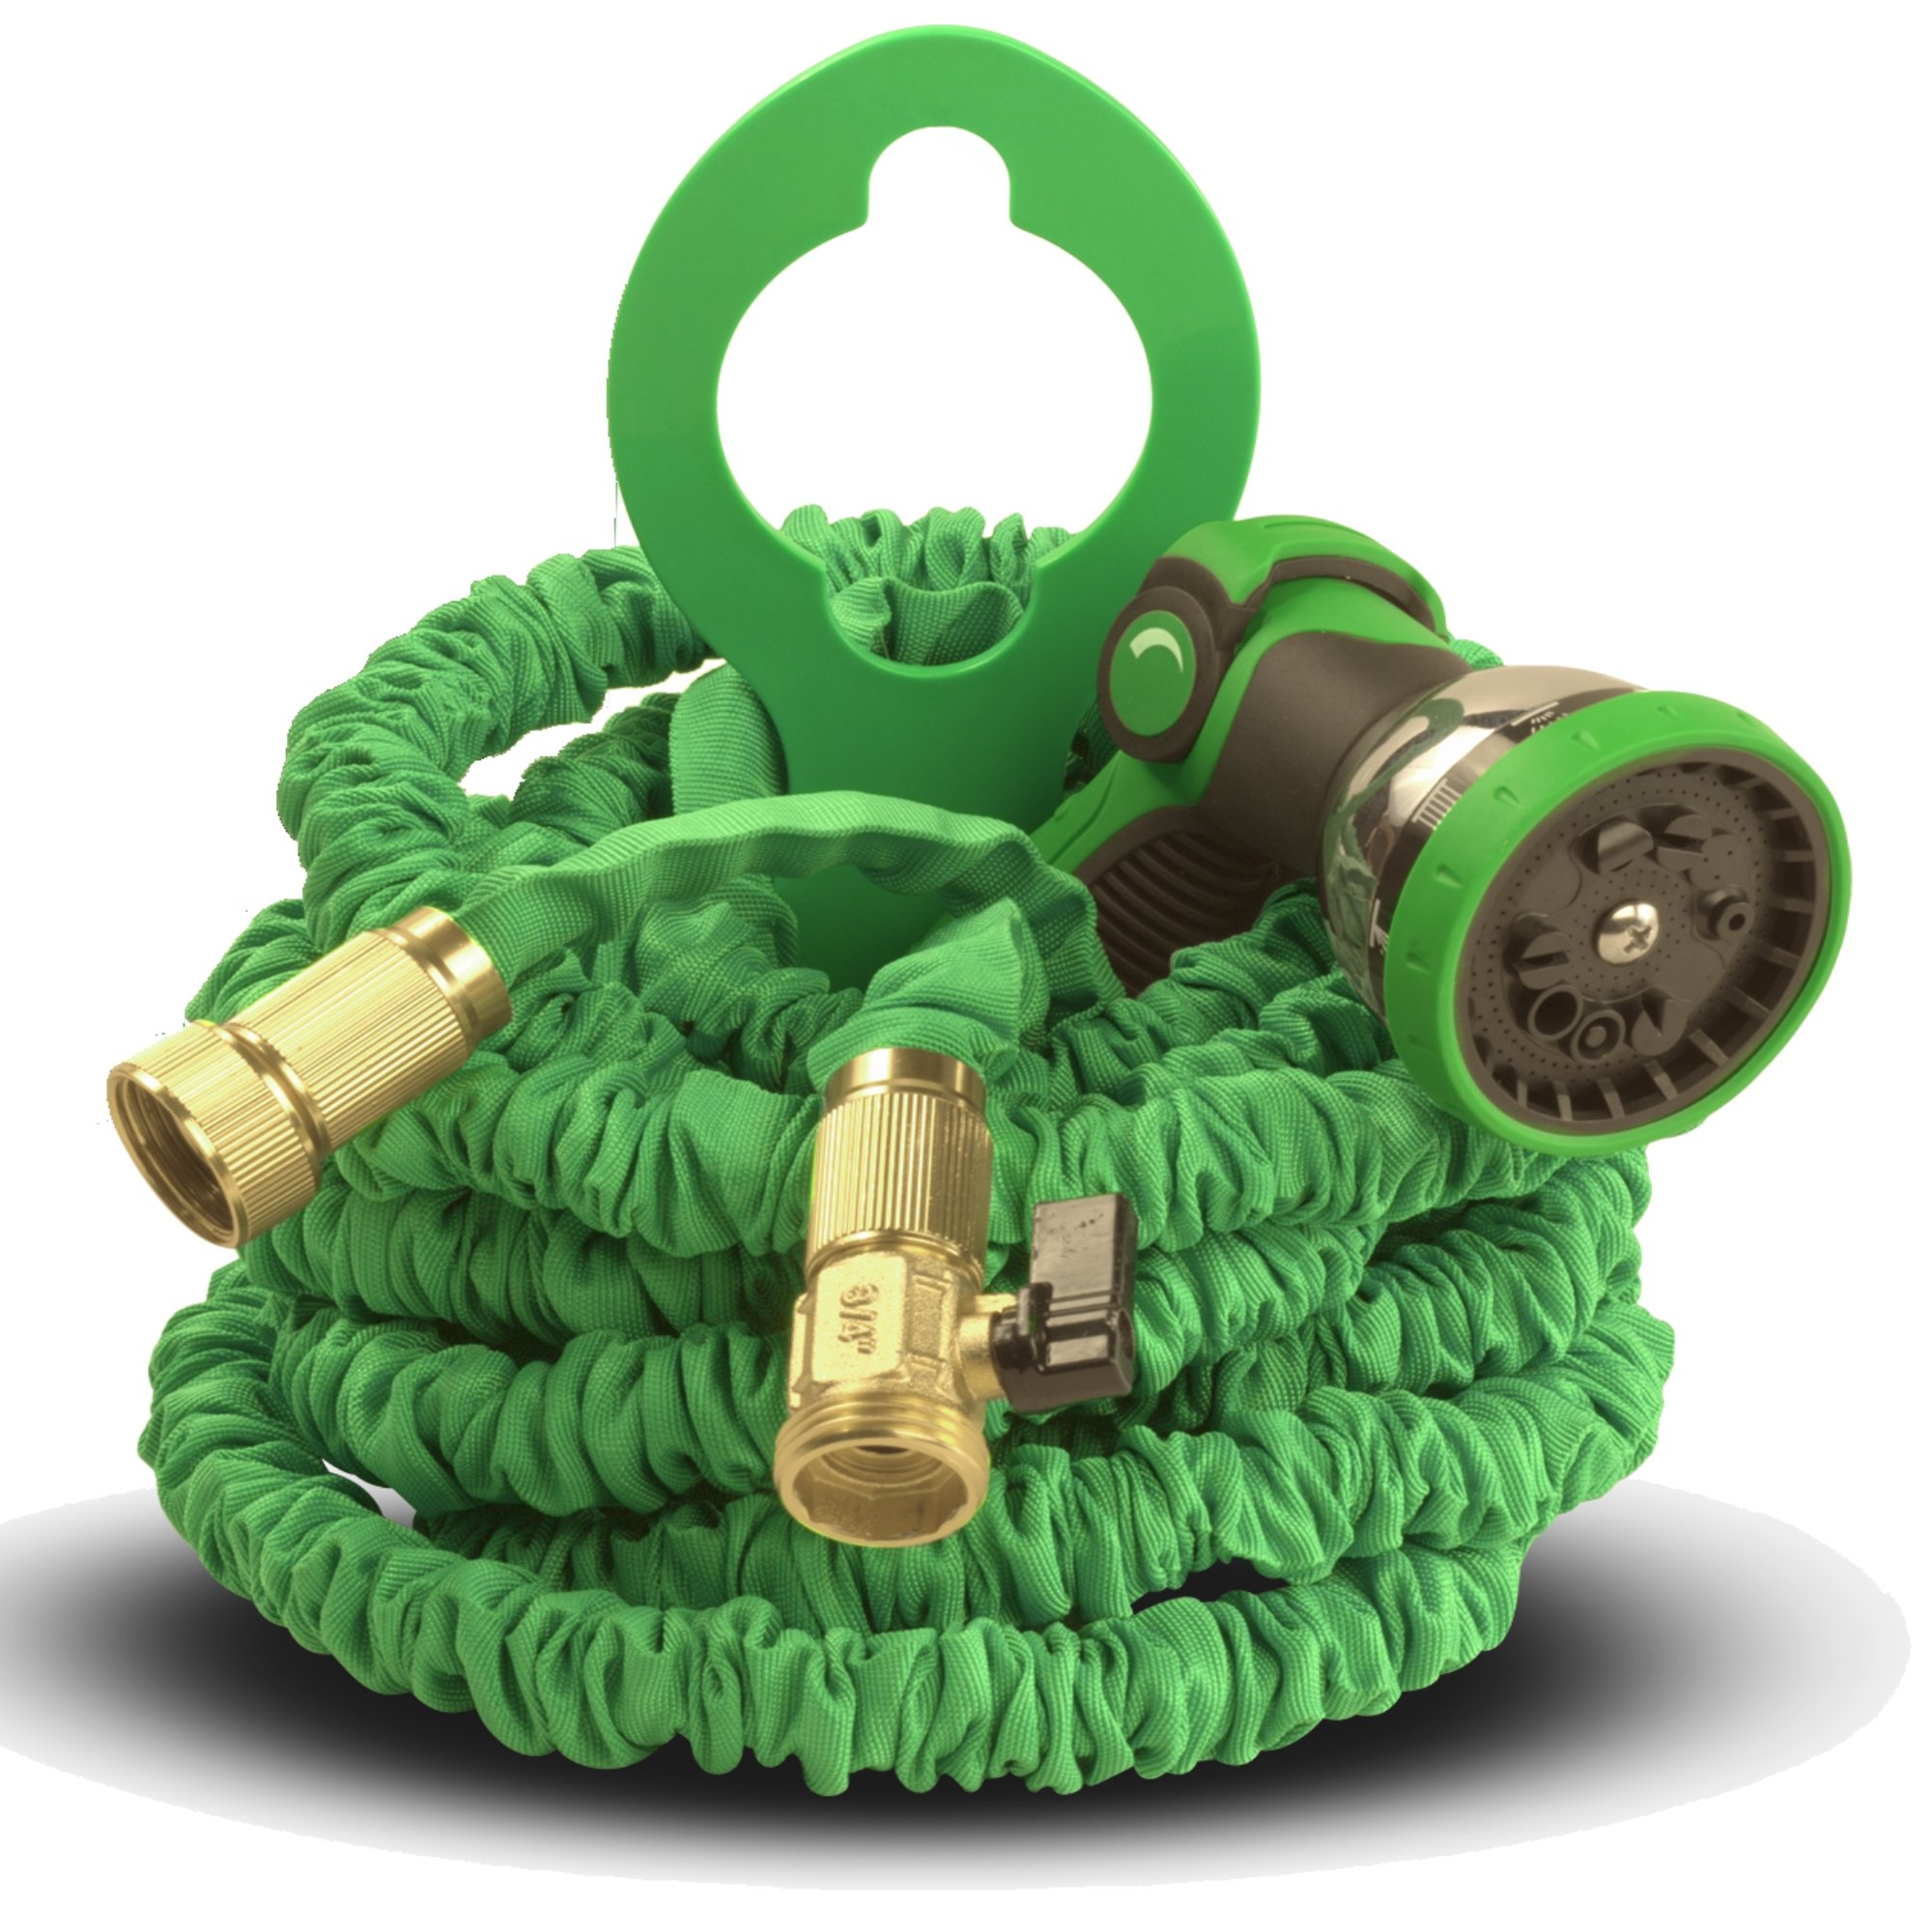 TBI Garden Hose 50 Foot - Best Expandable Water Hoses Set DAP Pro 10-Way Spray Nozzle - Strongest Lightweight Coil Flex, Collapsible Flexible Expanding 3-Layer Latex in Pocket. Green. 50 Feet